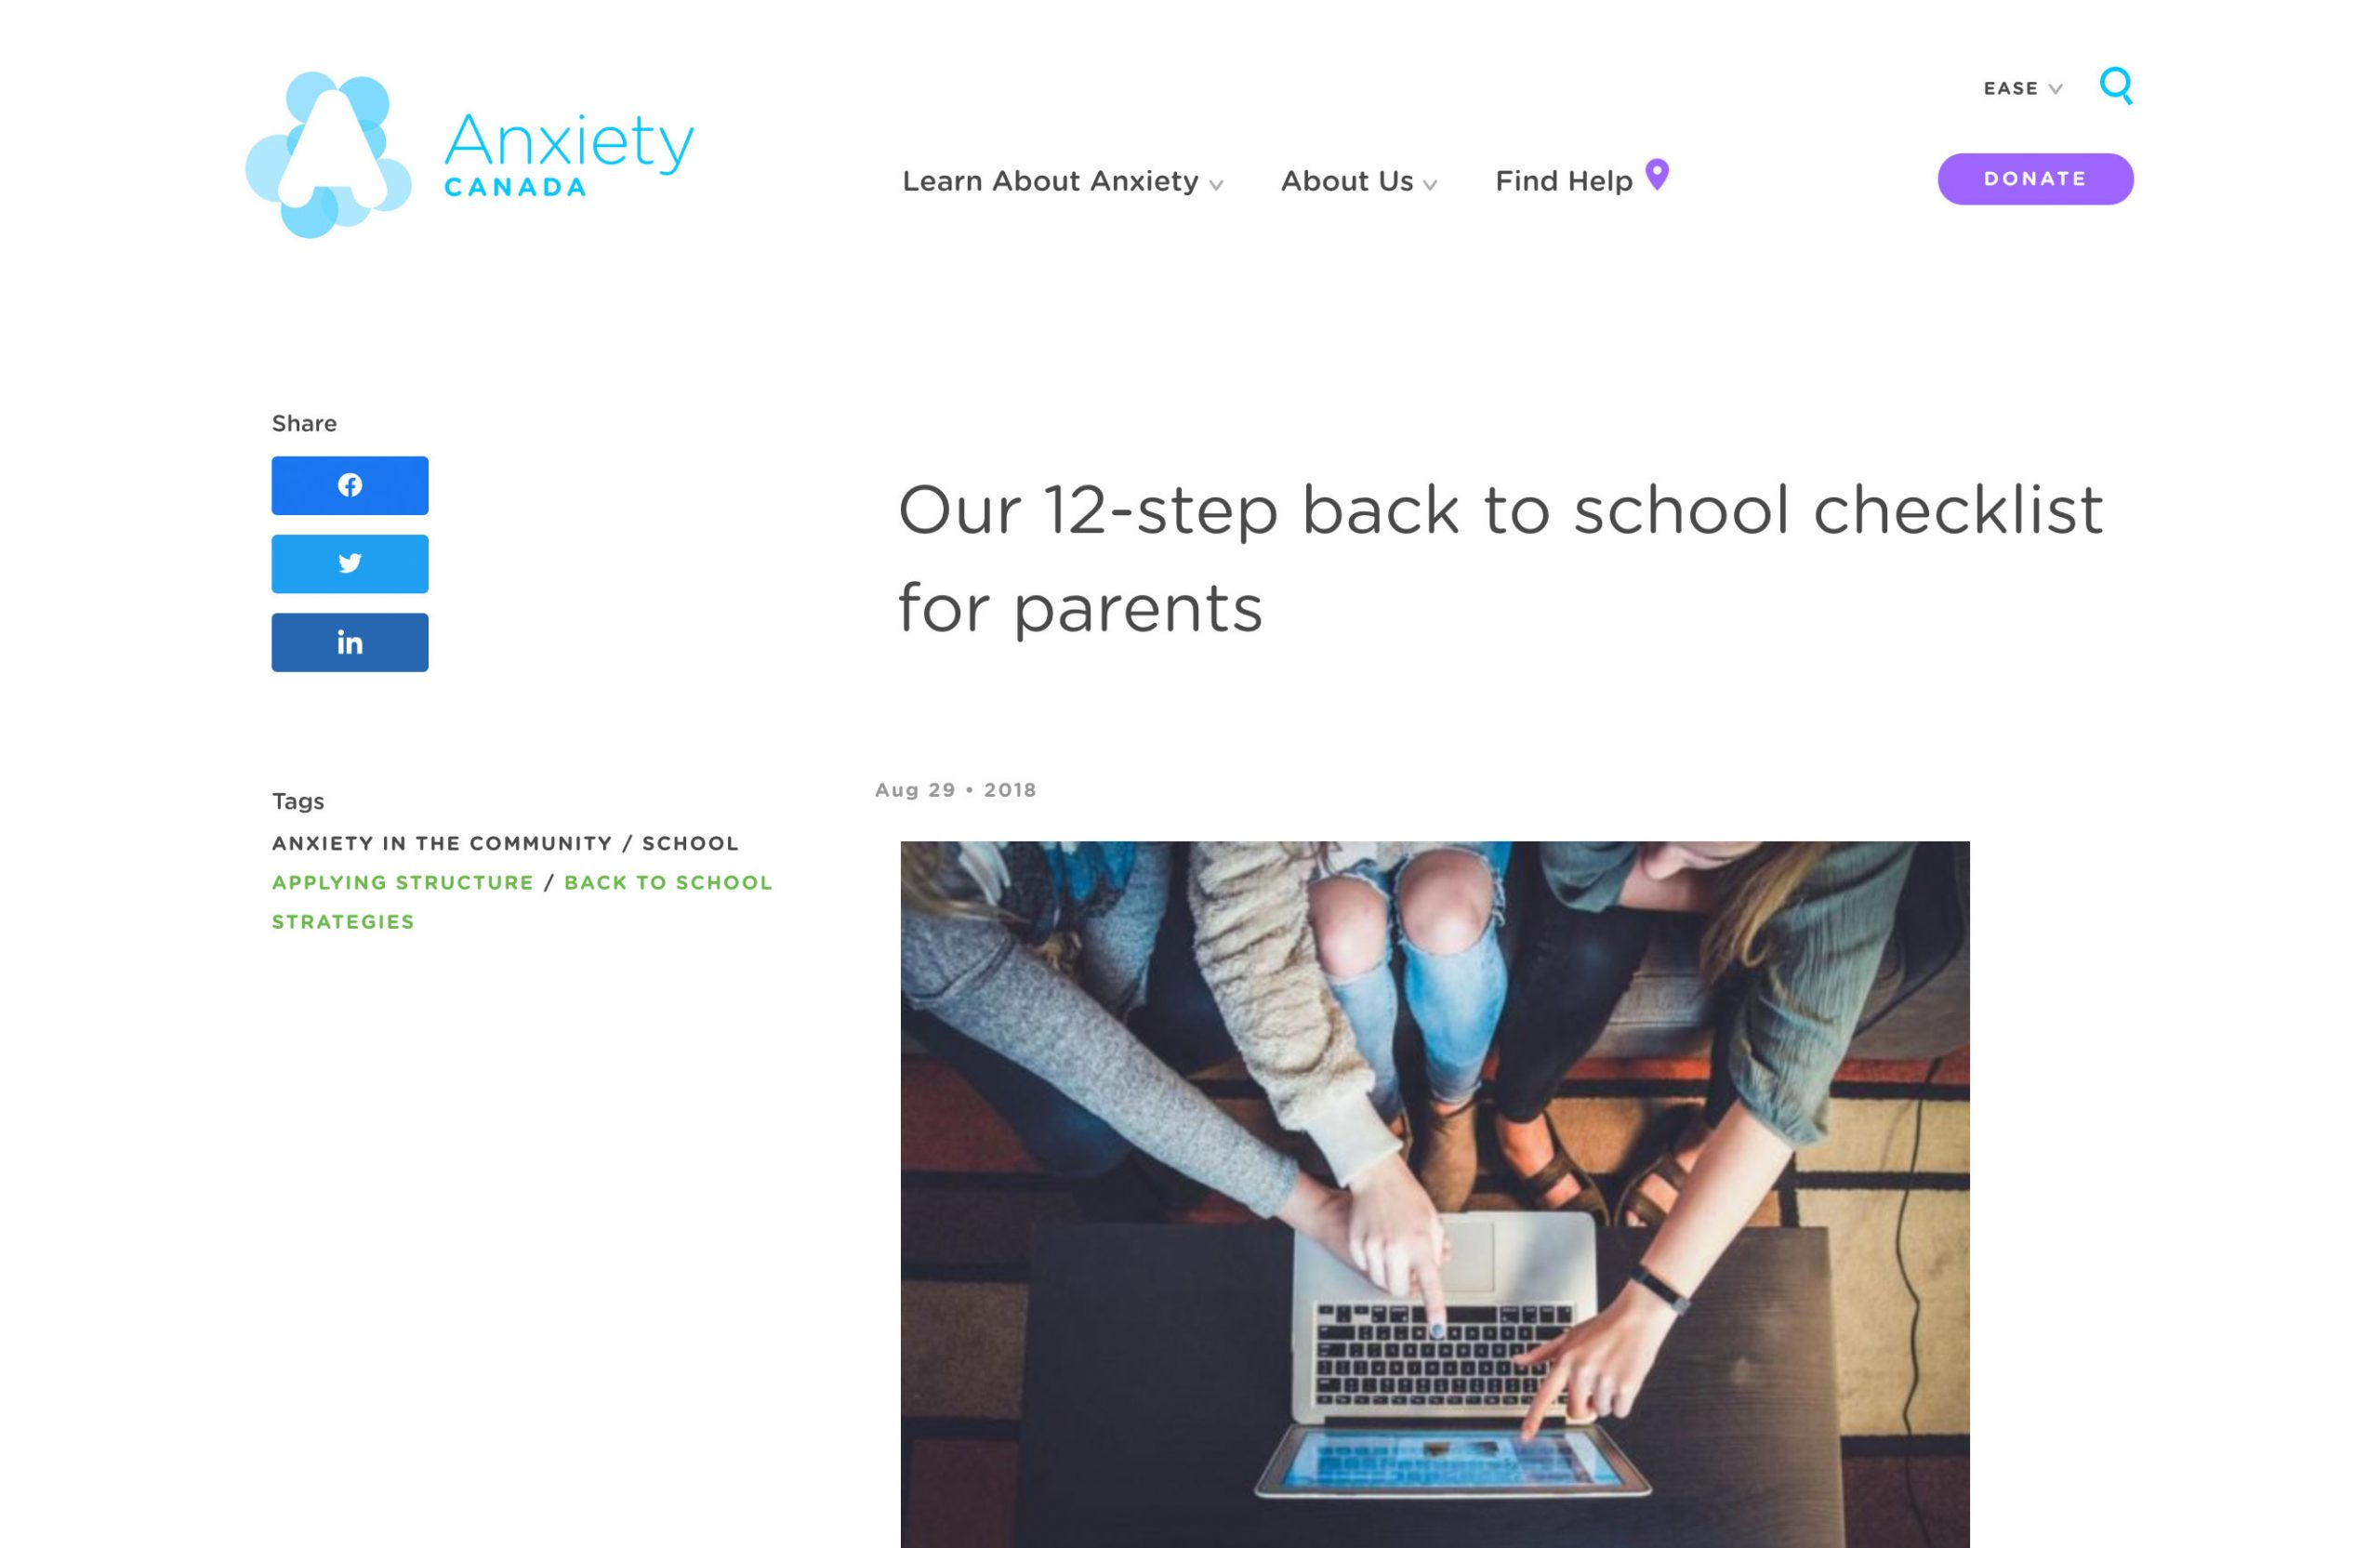 12-step back to school checklist for parents